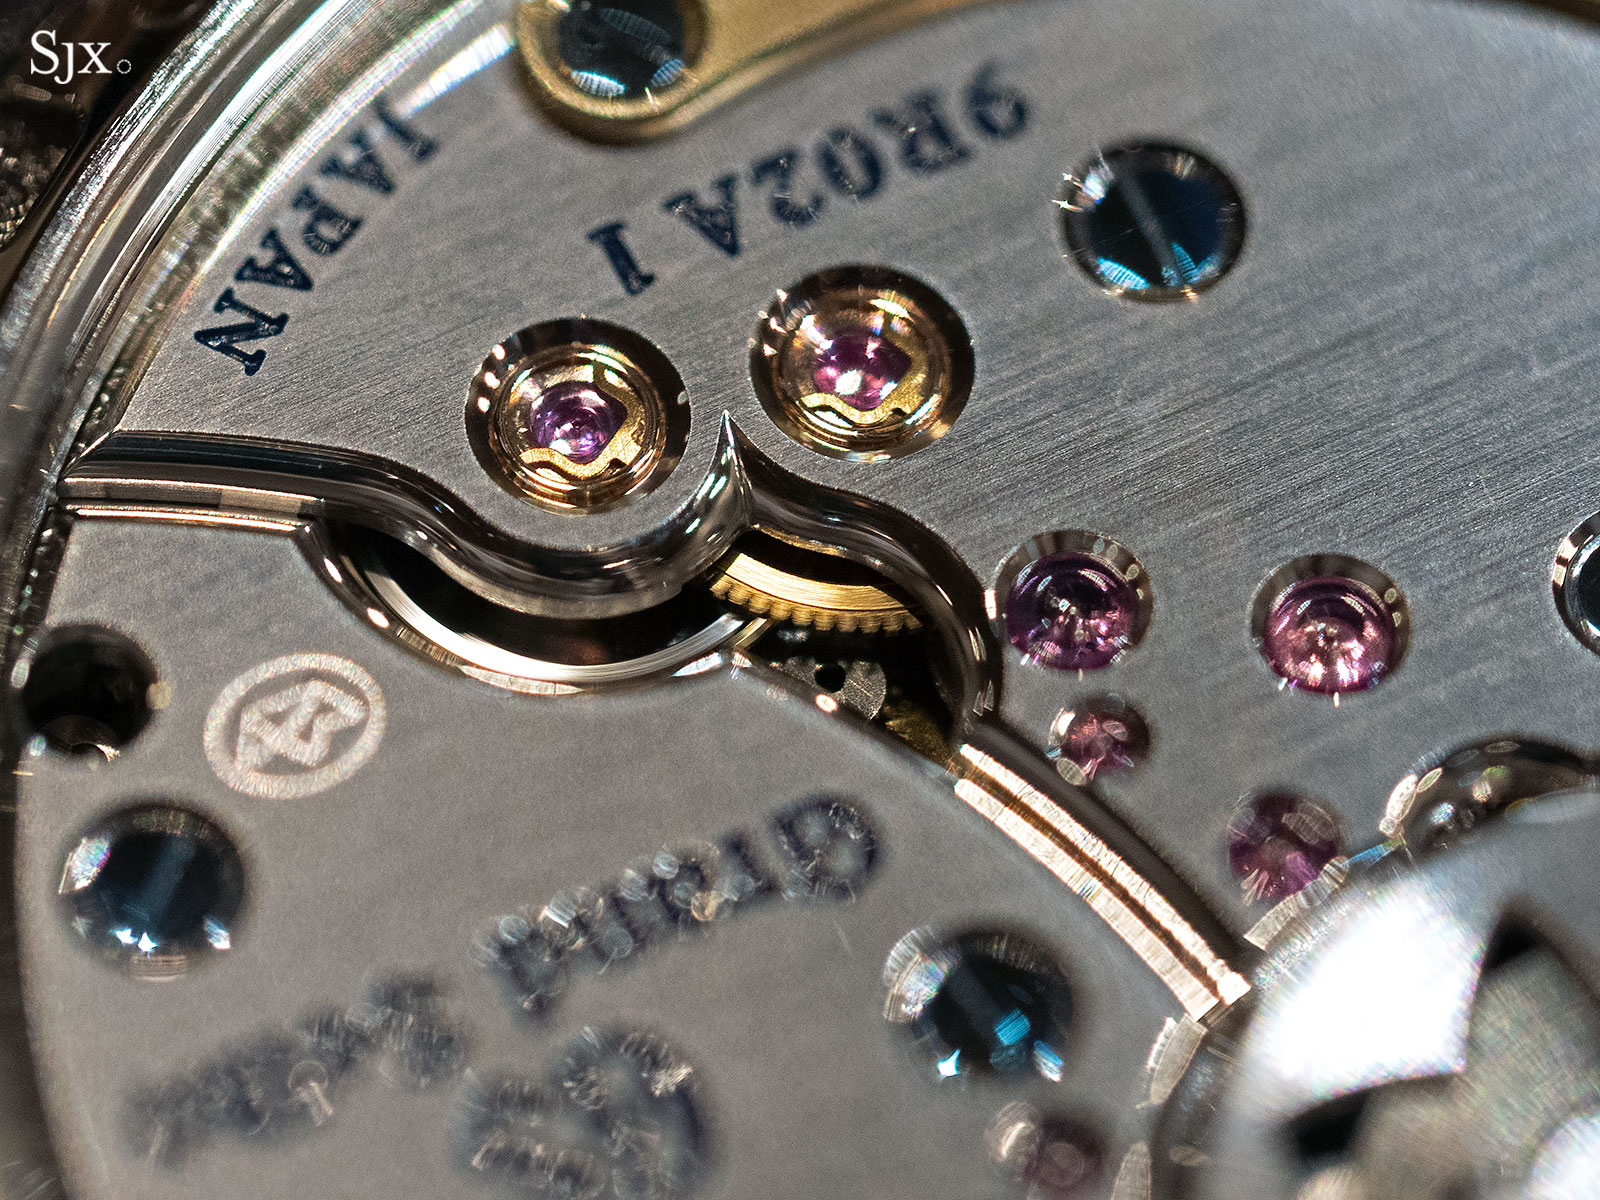 Grand Seiko Spring Drive 9R02 movement 3